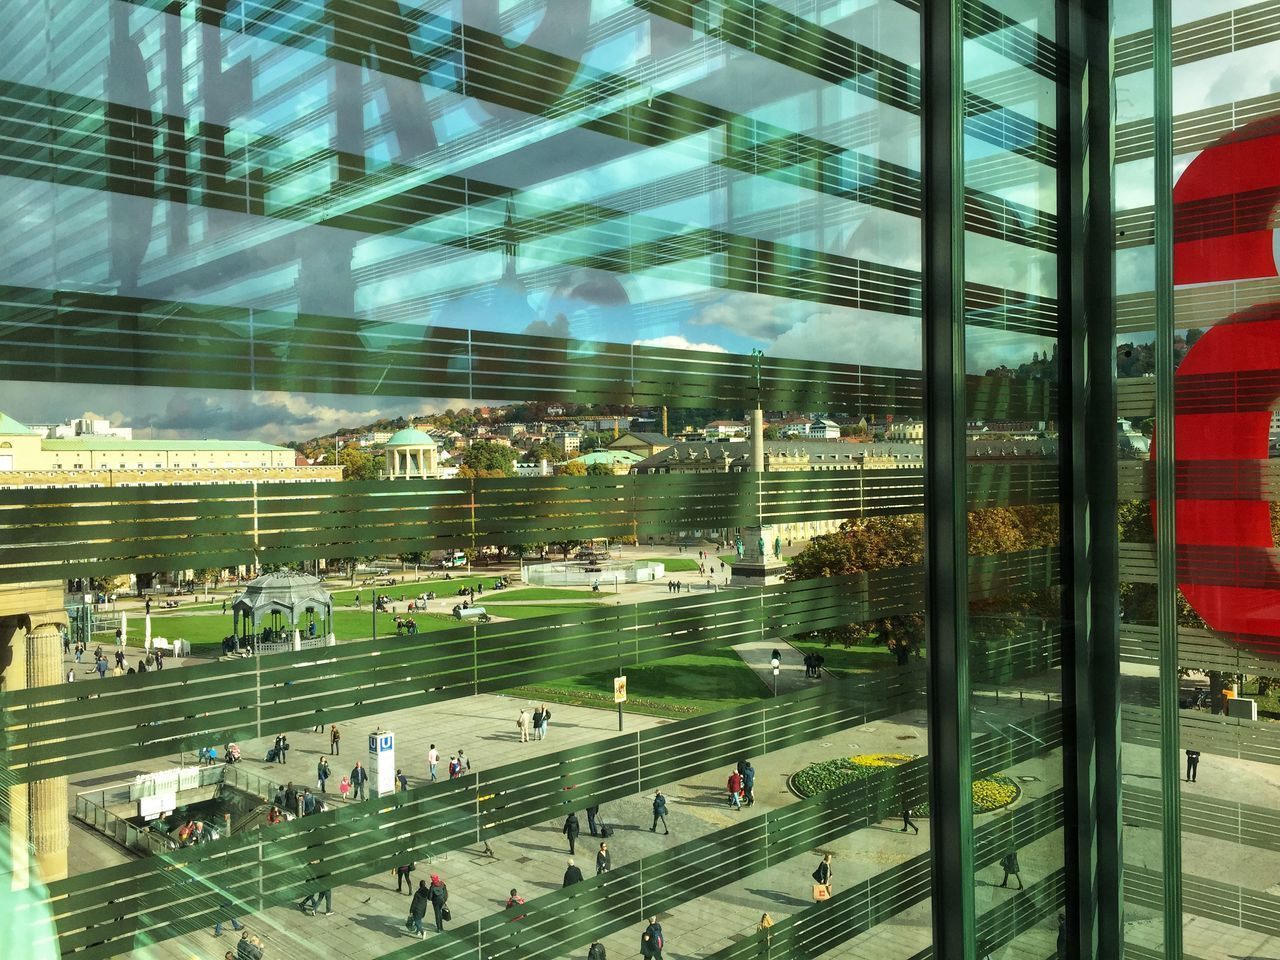 architecture, glass - material, transparent, built structure, window, city, building exterior, transportation, incidental people, day, outdoors, mode of transportation, reflection, group of people, modern, travel, nature, airport, building